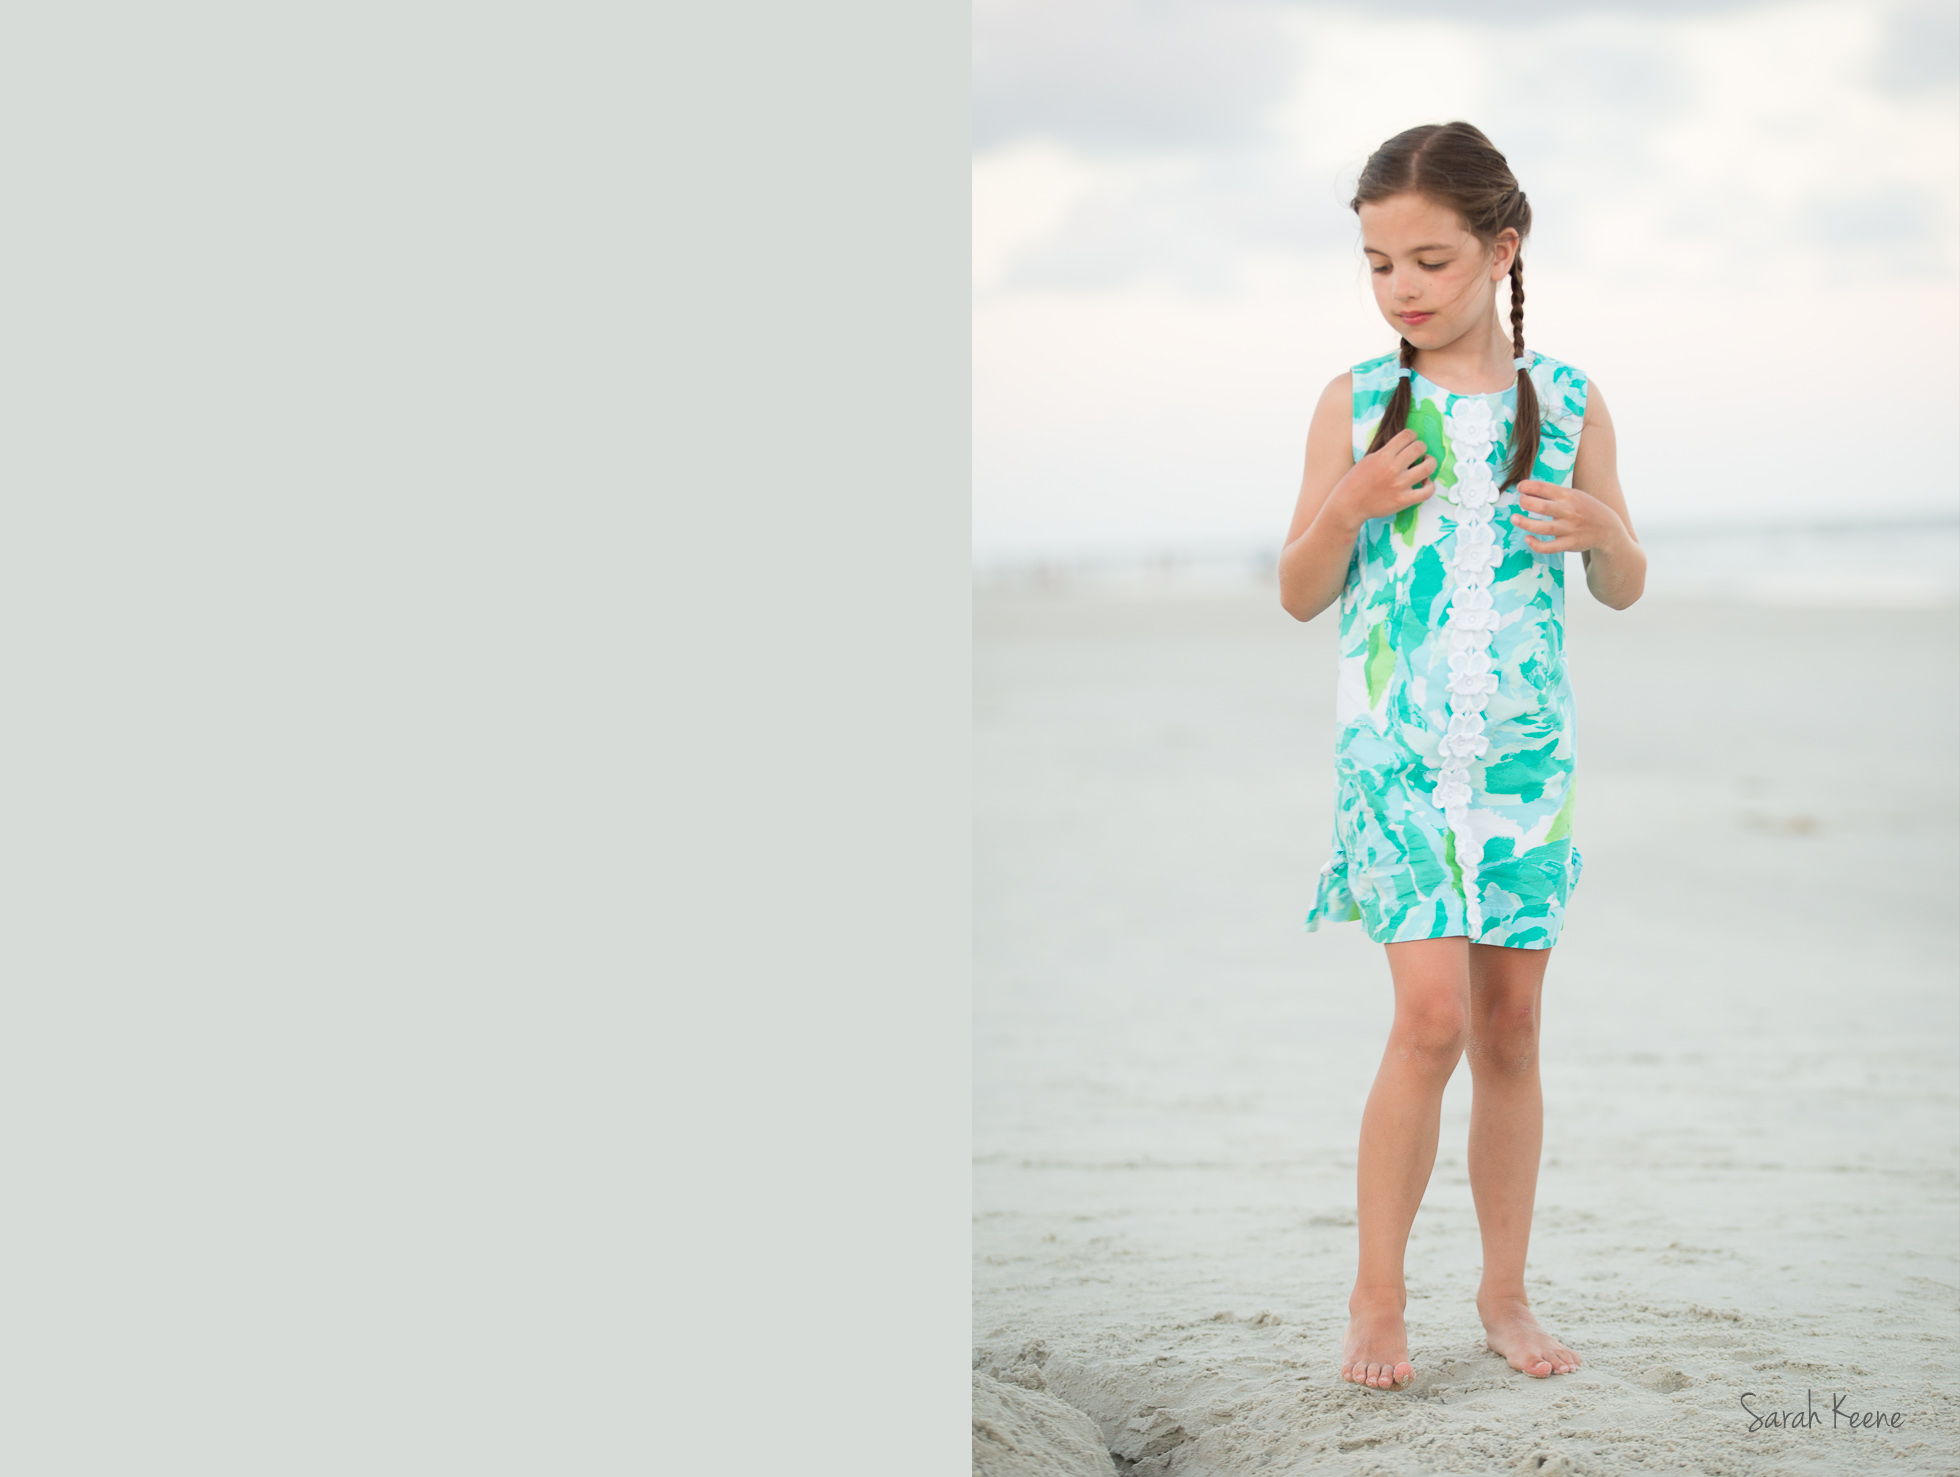 A portrait of ayoung girl with braids at the beach